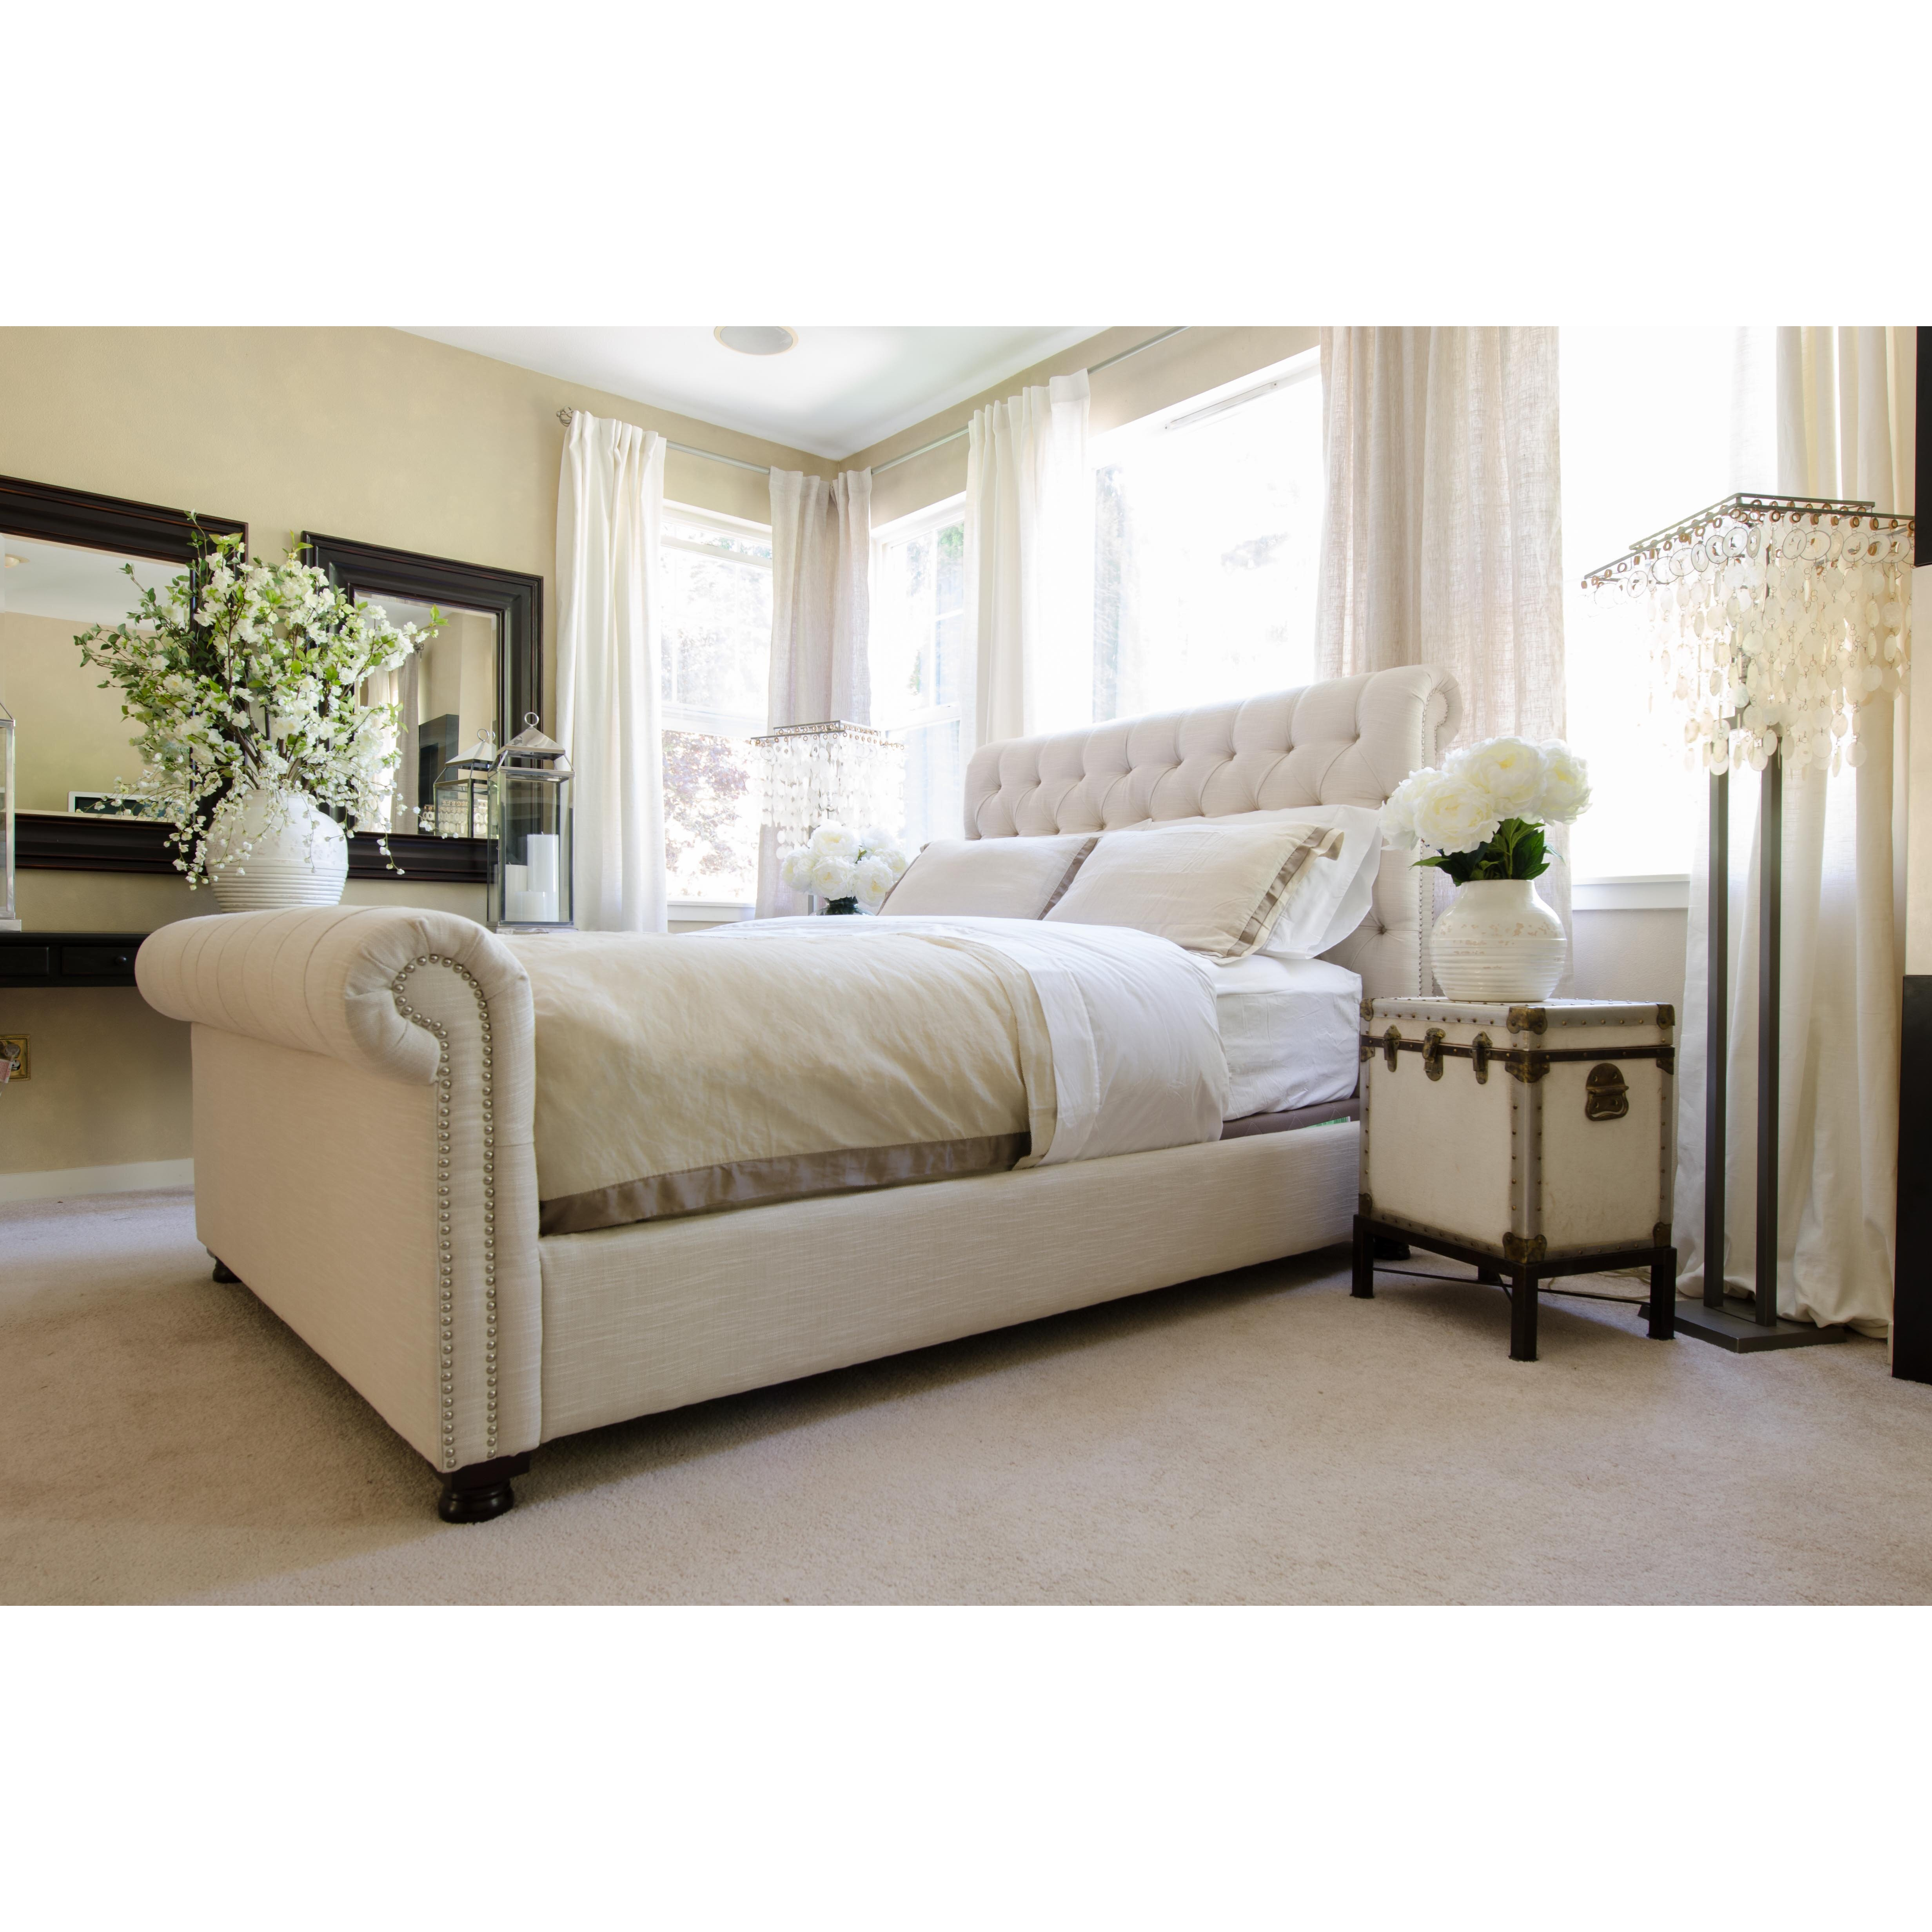 elements fine home furnishings upholstered sleigh bed reviews wayfair. Black Bedroom Furniture Sets. Home Design Ideas